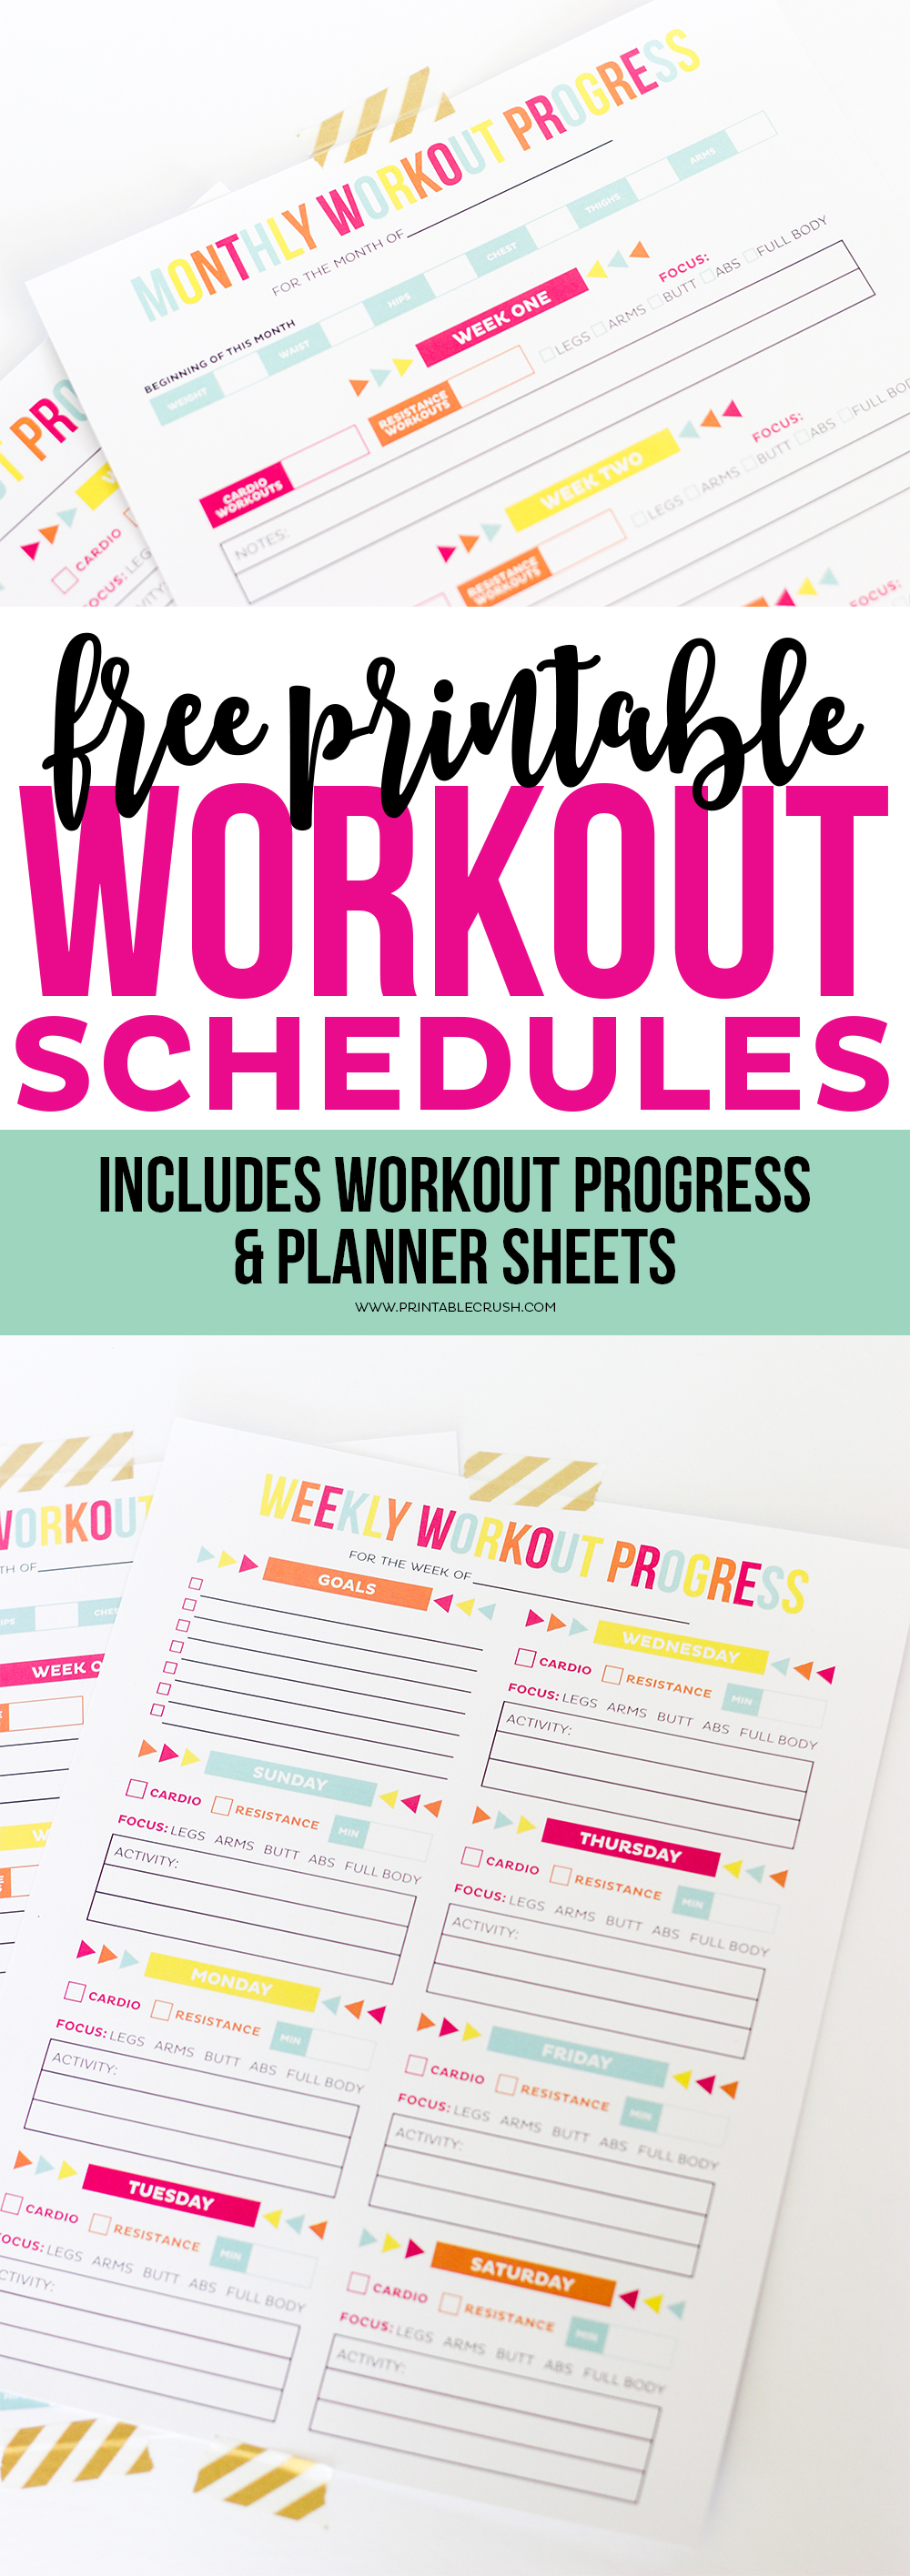 graphic regarding Printable Workouts Routines identify Exercise routine Calendar - Free of charge Printable Plan/Enhancements Sheets